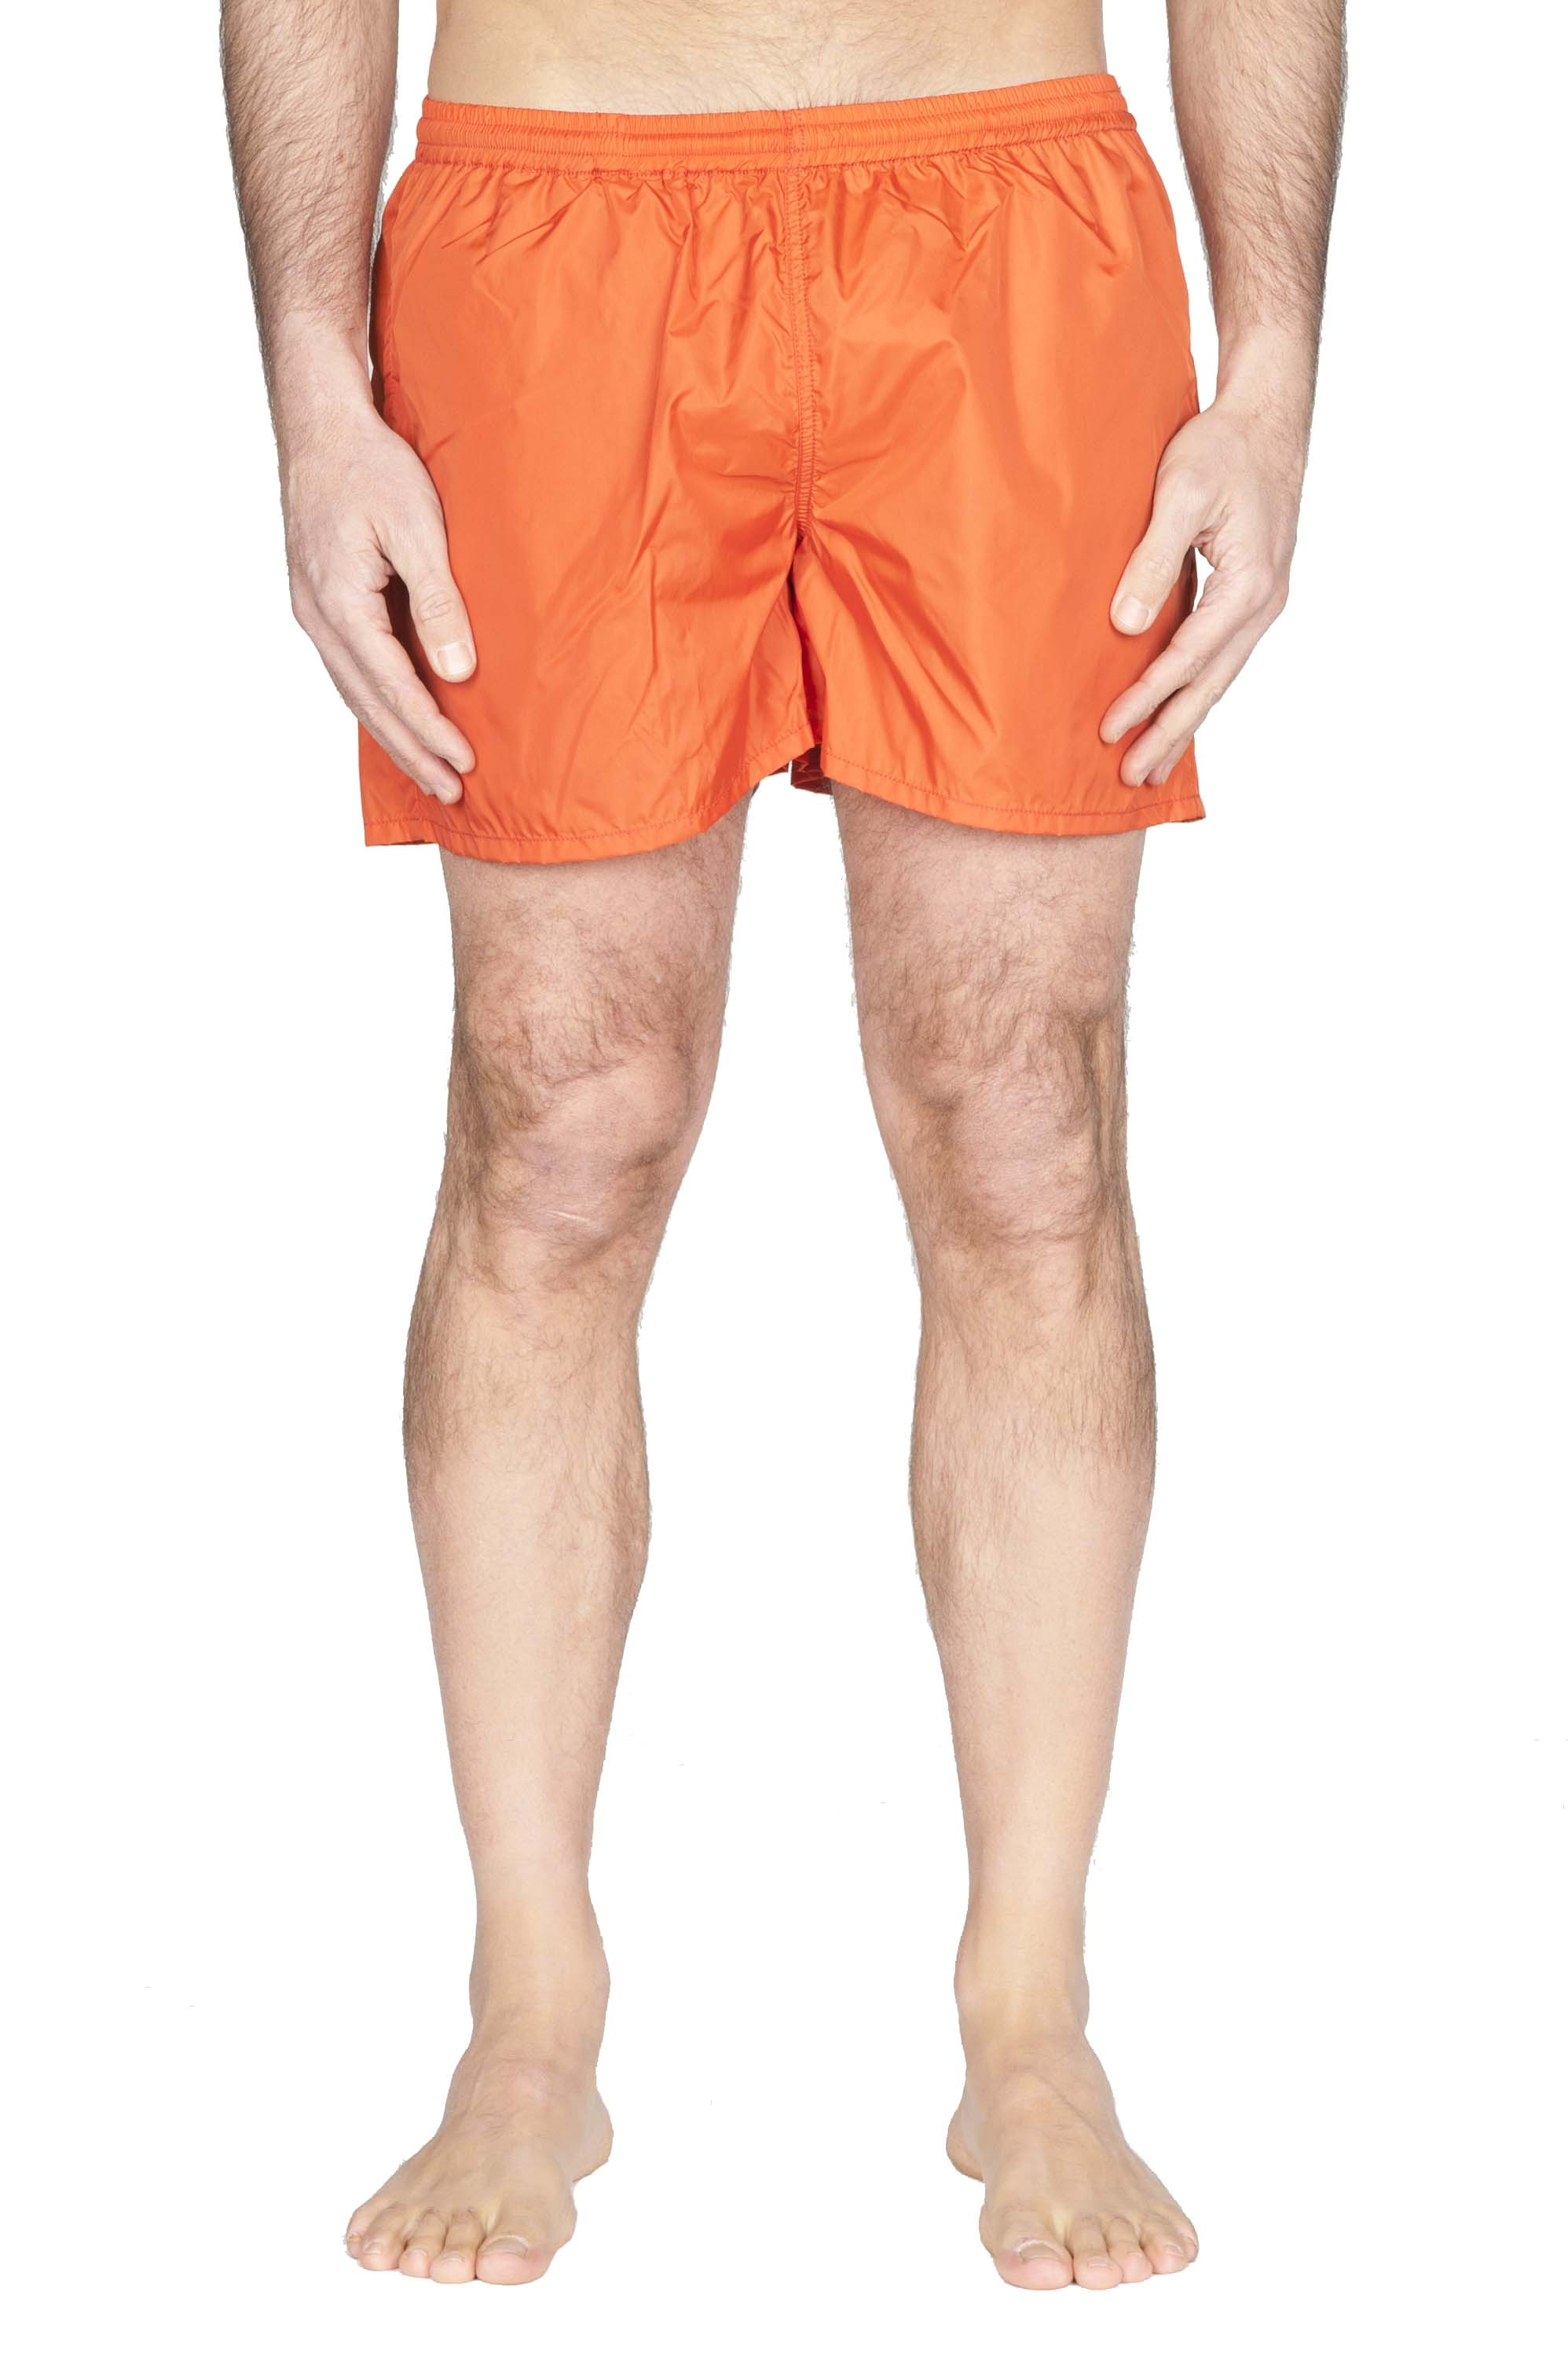 SBU 01755 Tactical swimsuit trunks in orange ultra-lightweight nylon 01